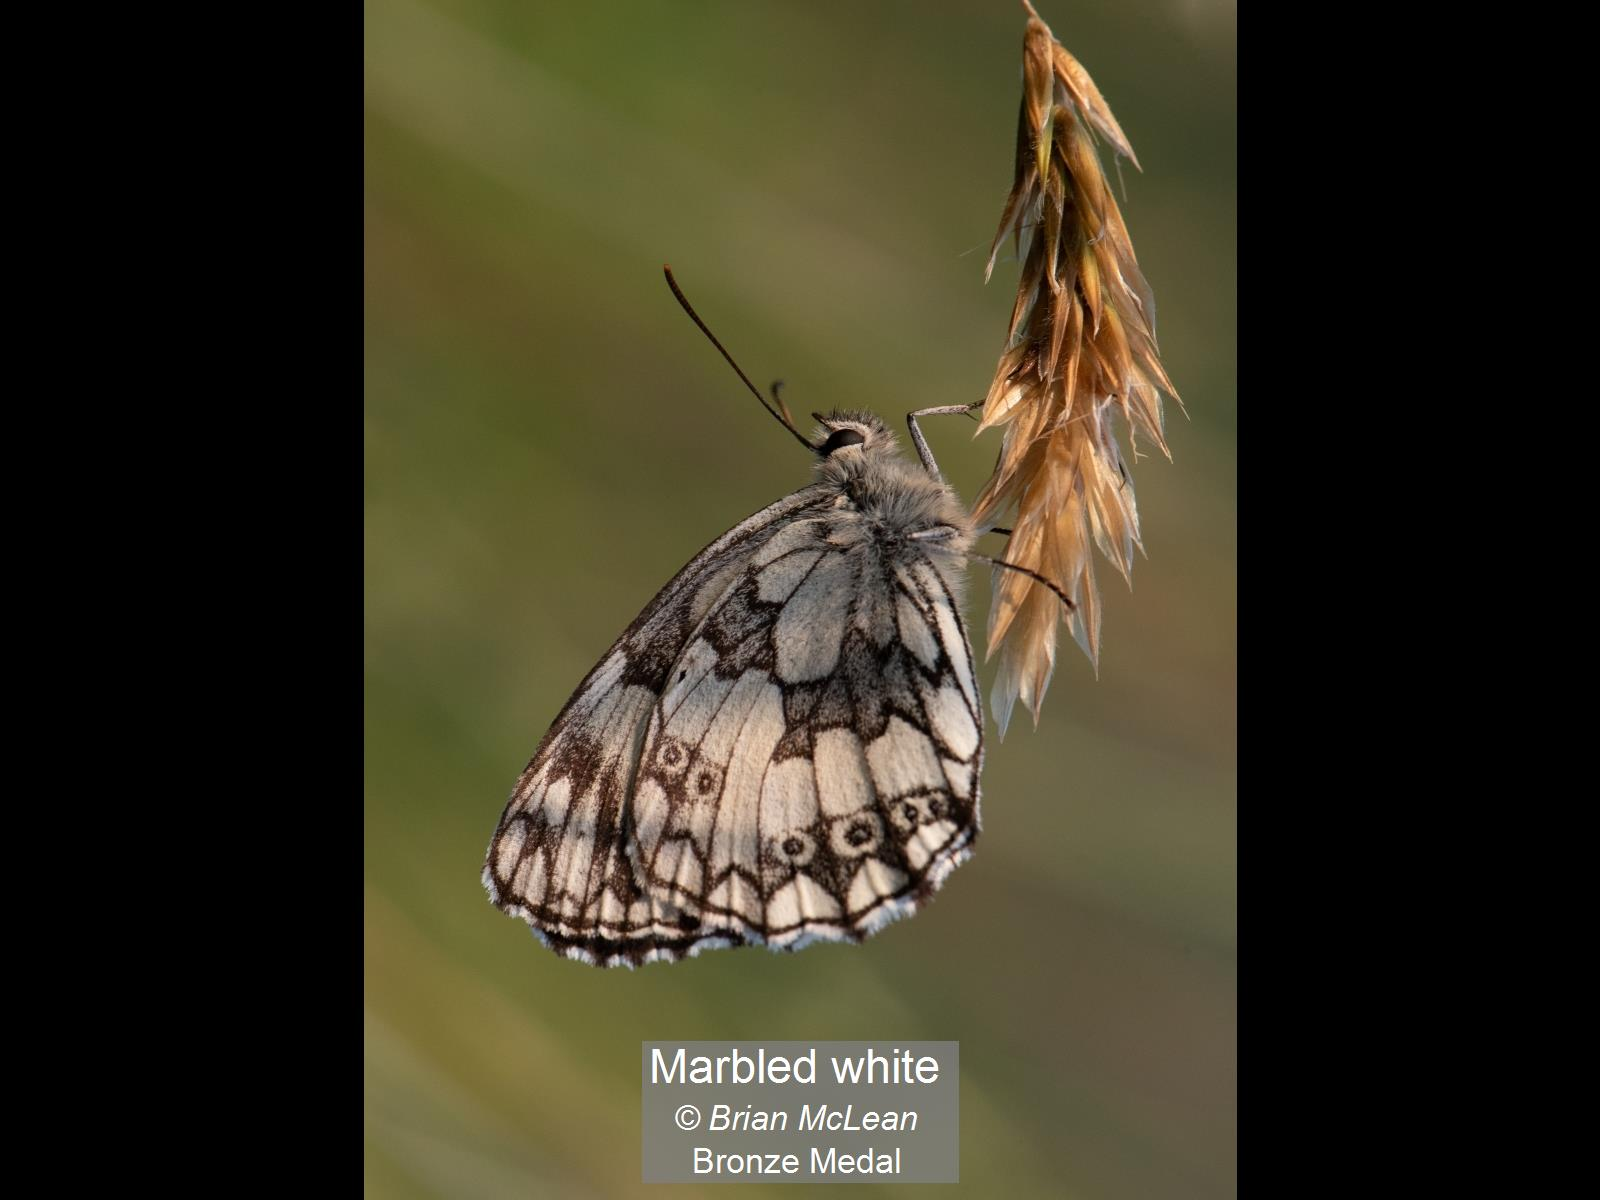 Marbled white_Brian McLean_Bronze